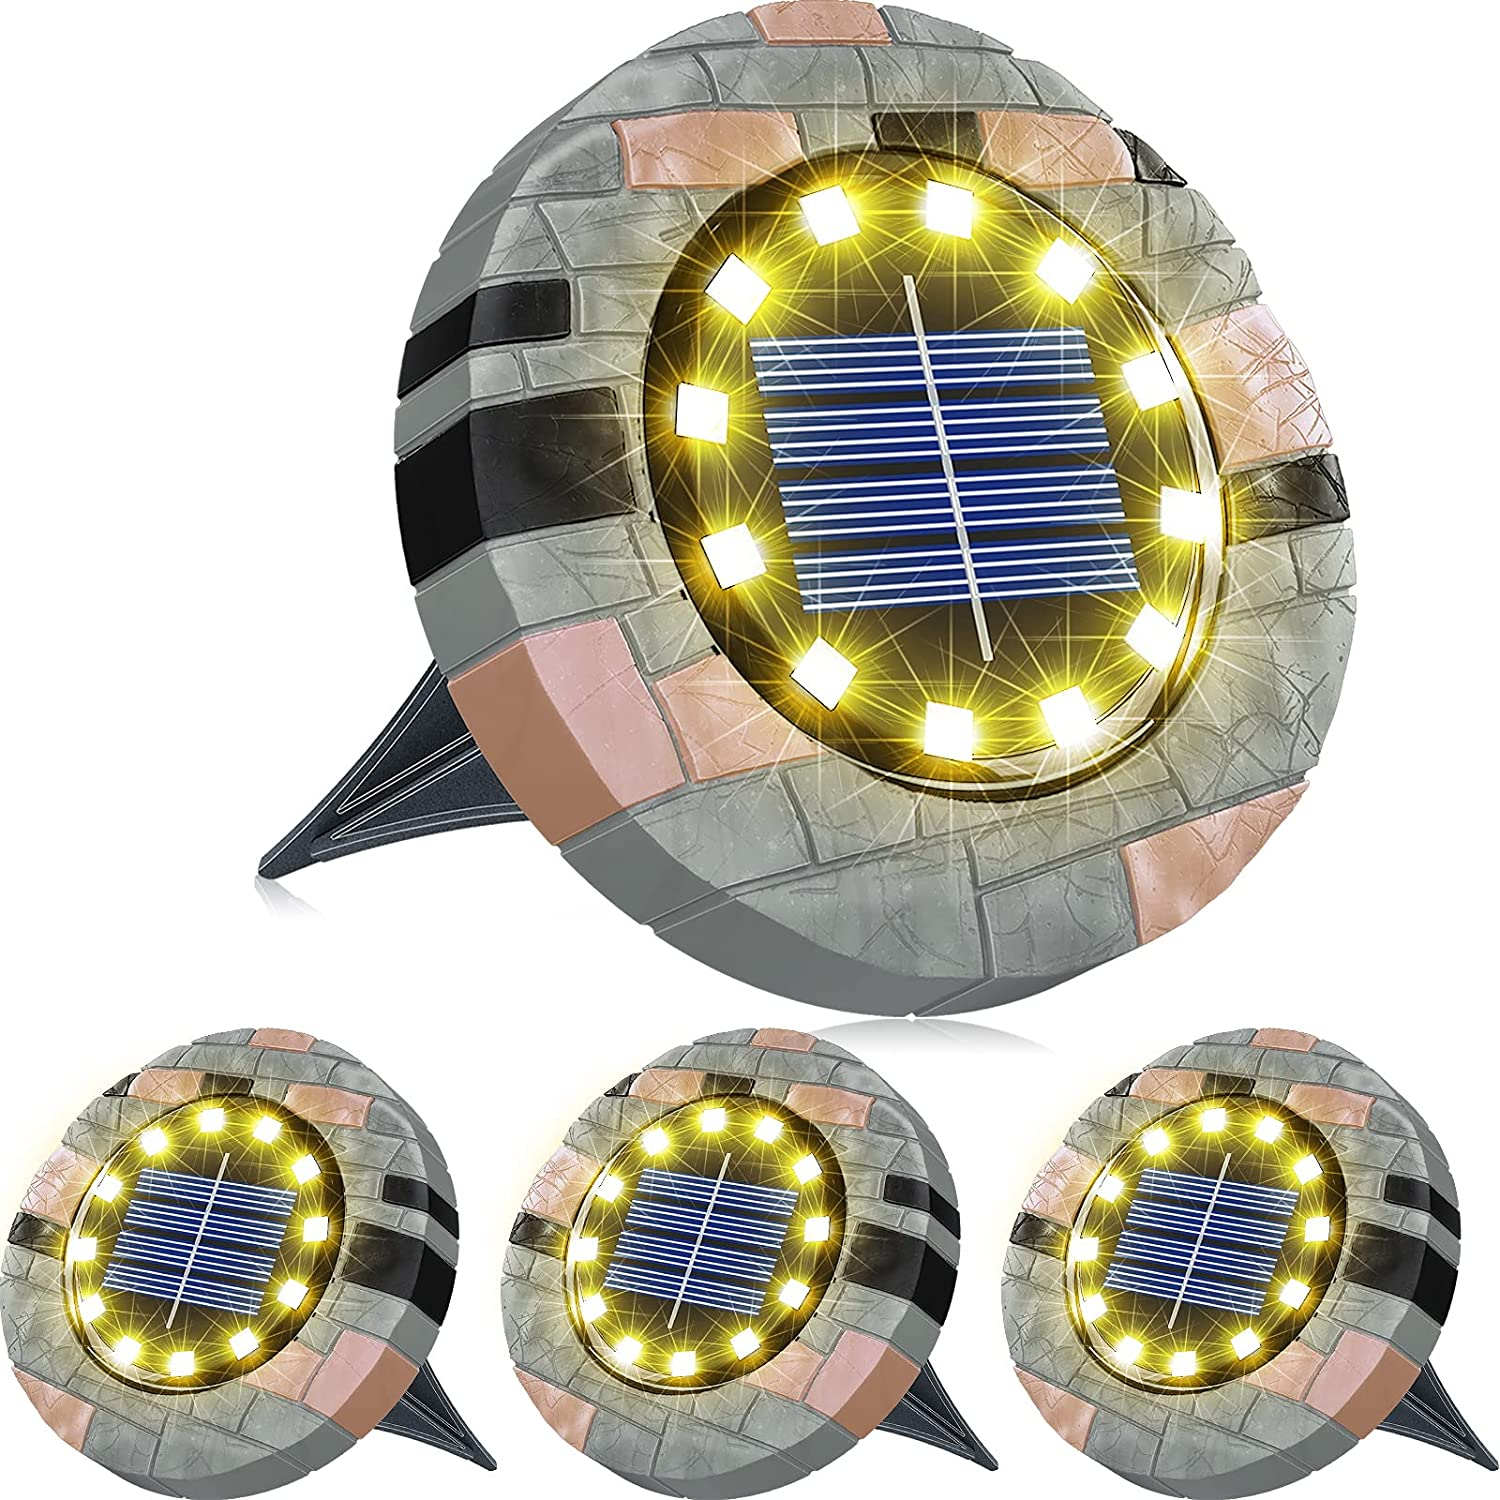 Biling Solar Ground Lights Outdoor with 12 LEDs, Bright Solar Lights Outdoor Waterproof LED Solar Disk Lights for Pathway Garden Yard and Walkway (Warm White 4 Pack) …